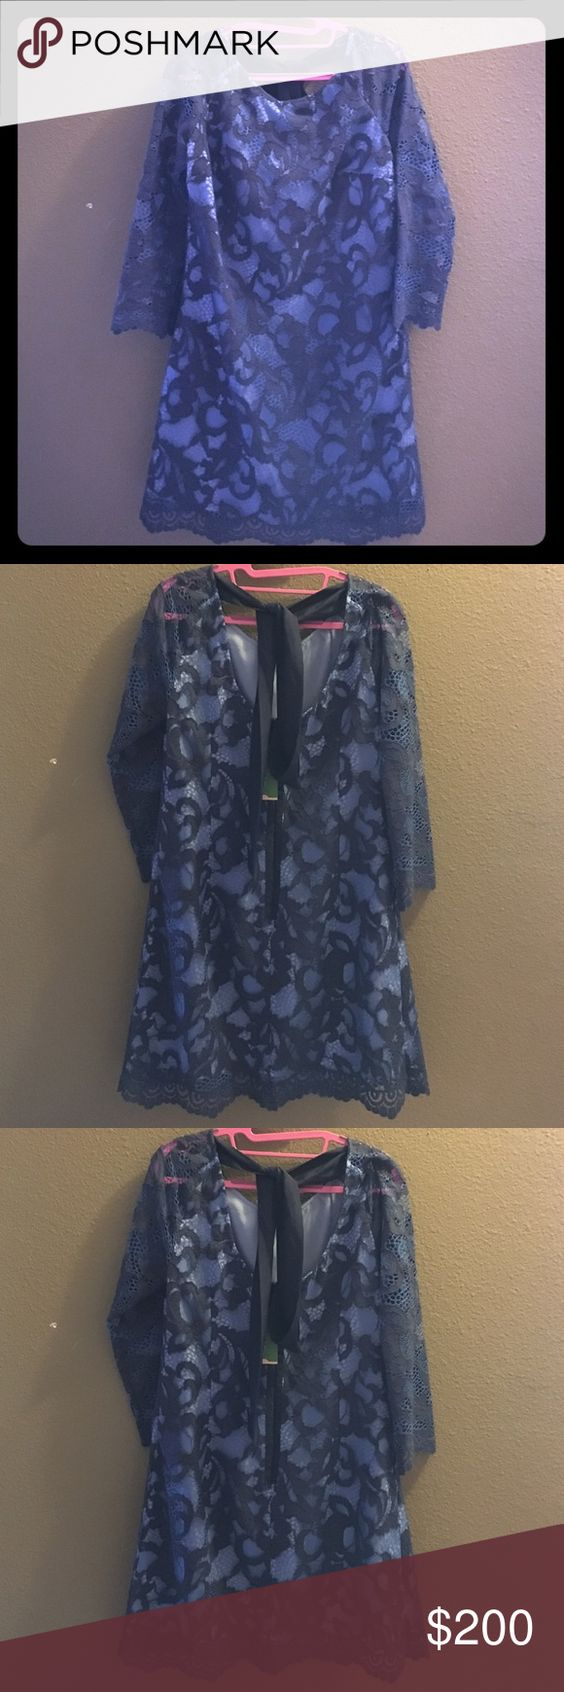 "Lily Pulitzer Aaliyah dress true navy size 8 Gorgeous romantic corded lace Lily Pulitzer ""Aaliyah"" dress in true navy. Size 8 NWT Lilly Pulitzer Dresses"